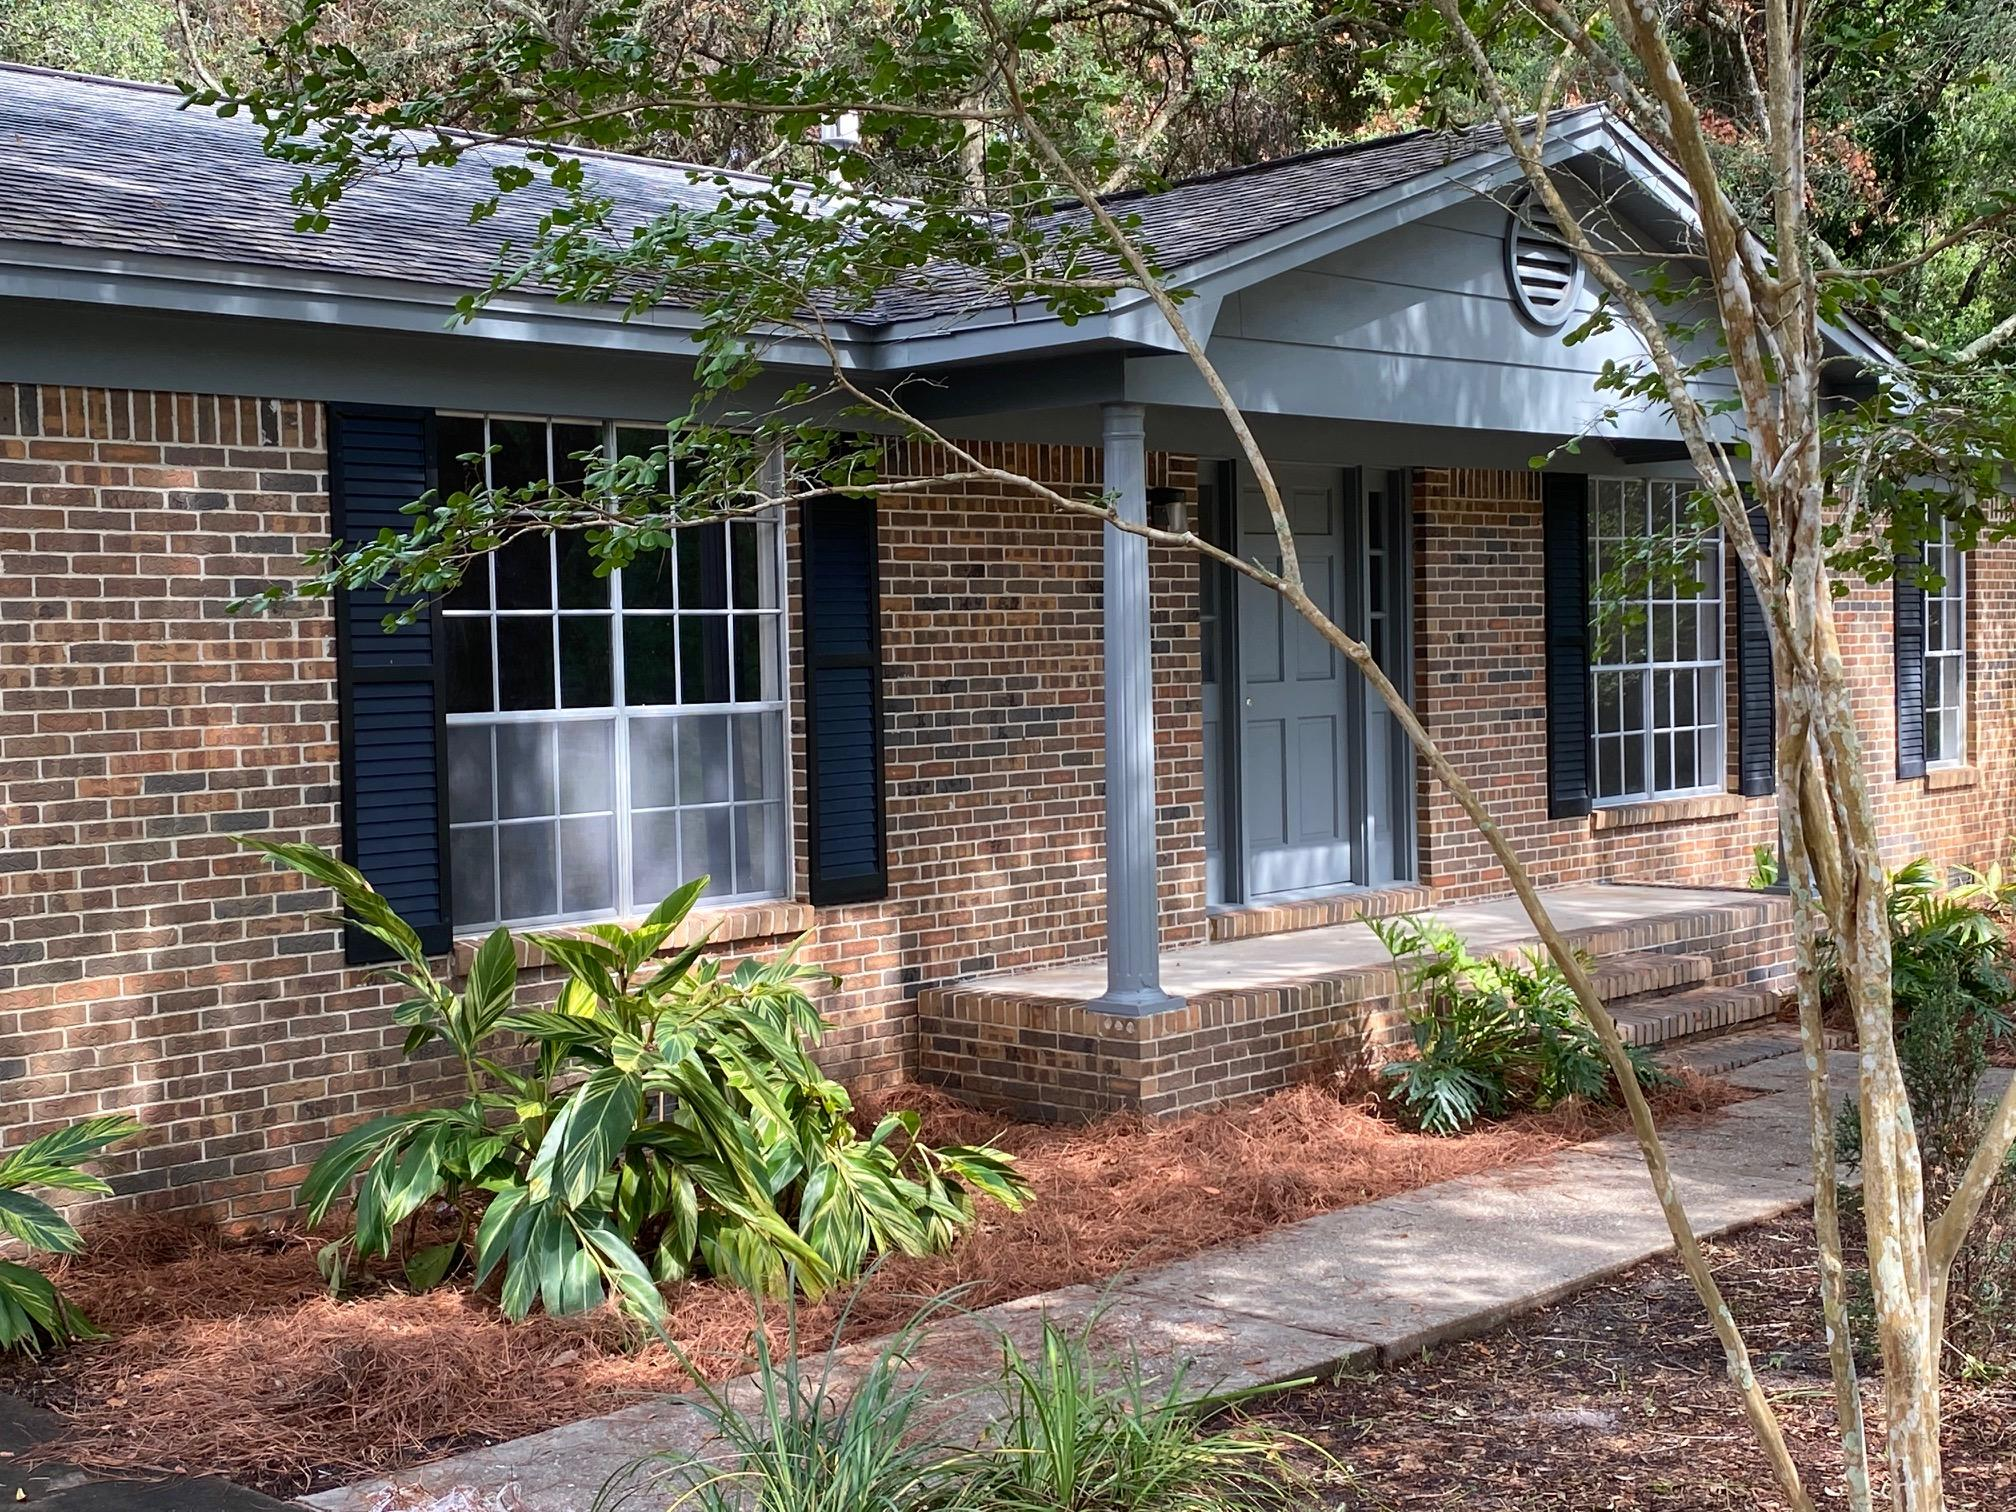 Remodeled! This home has been updated with new LVP flooring throughout. It has a new kitchen with st